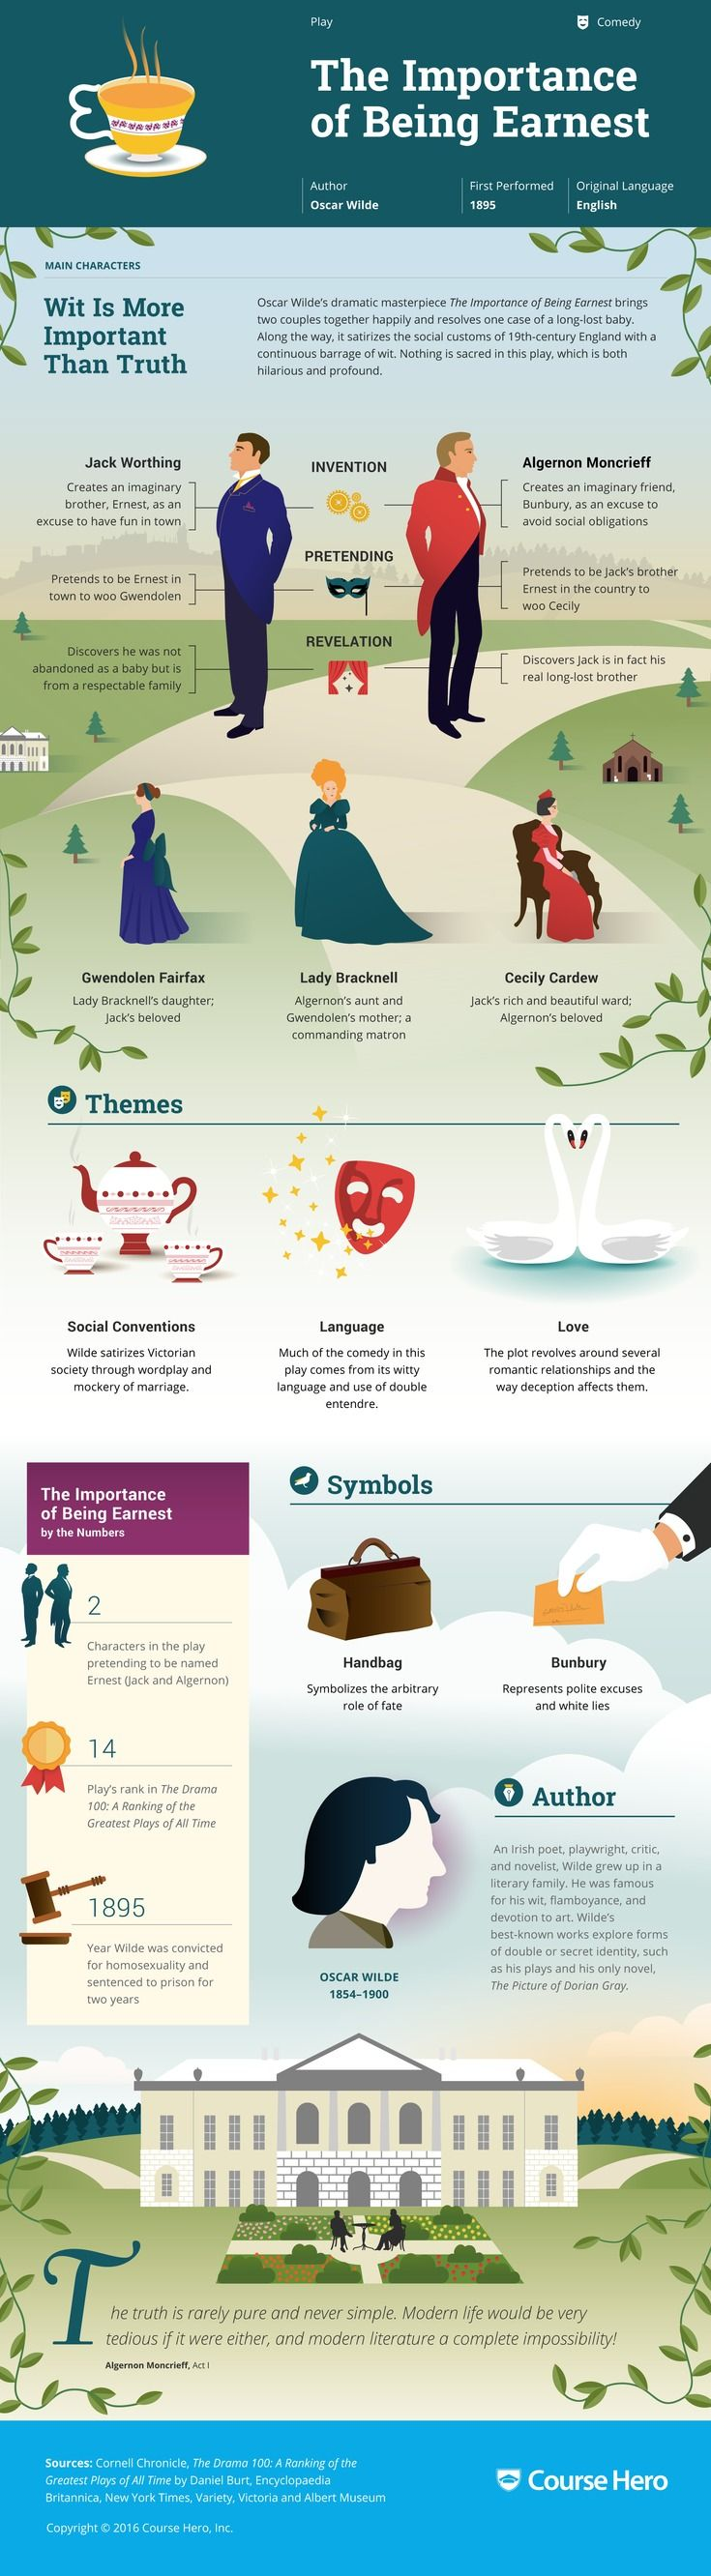 This @CourseHero infographic on The Importance of Being Earnest is both visually…